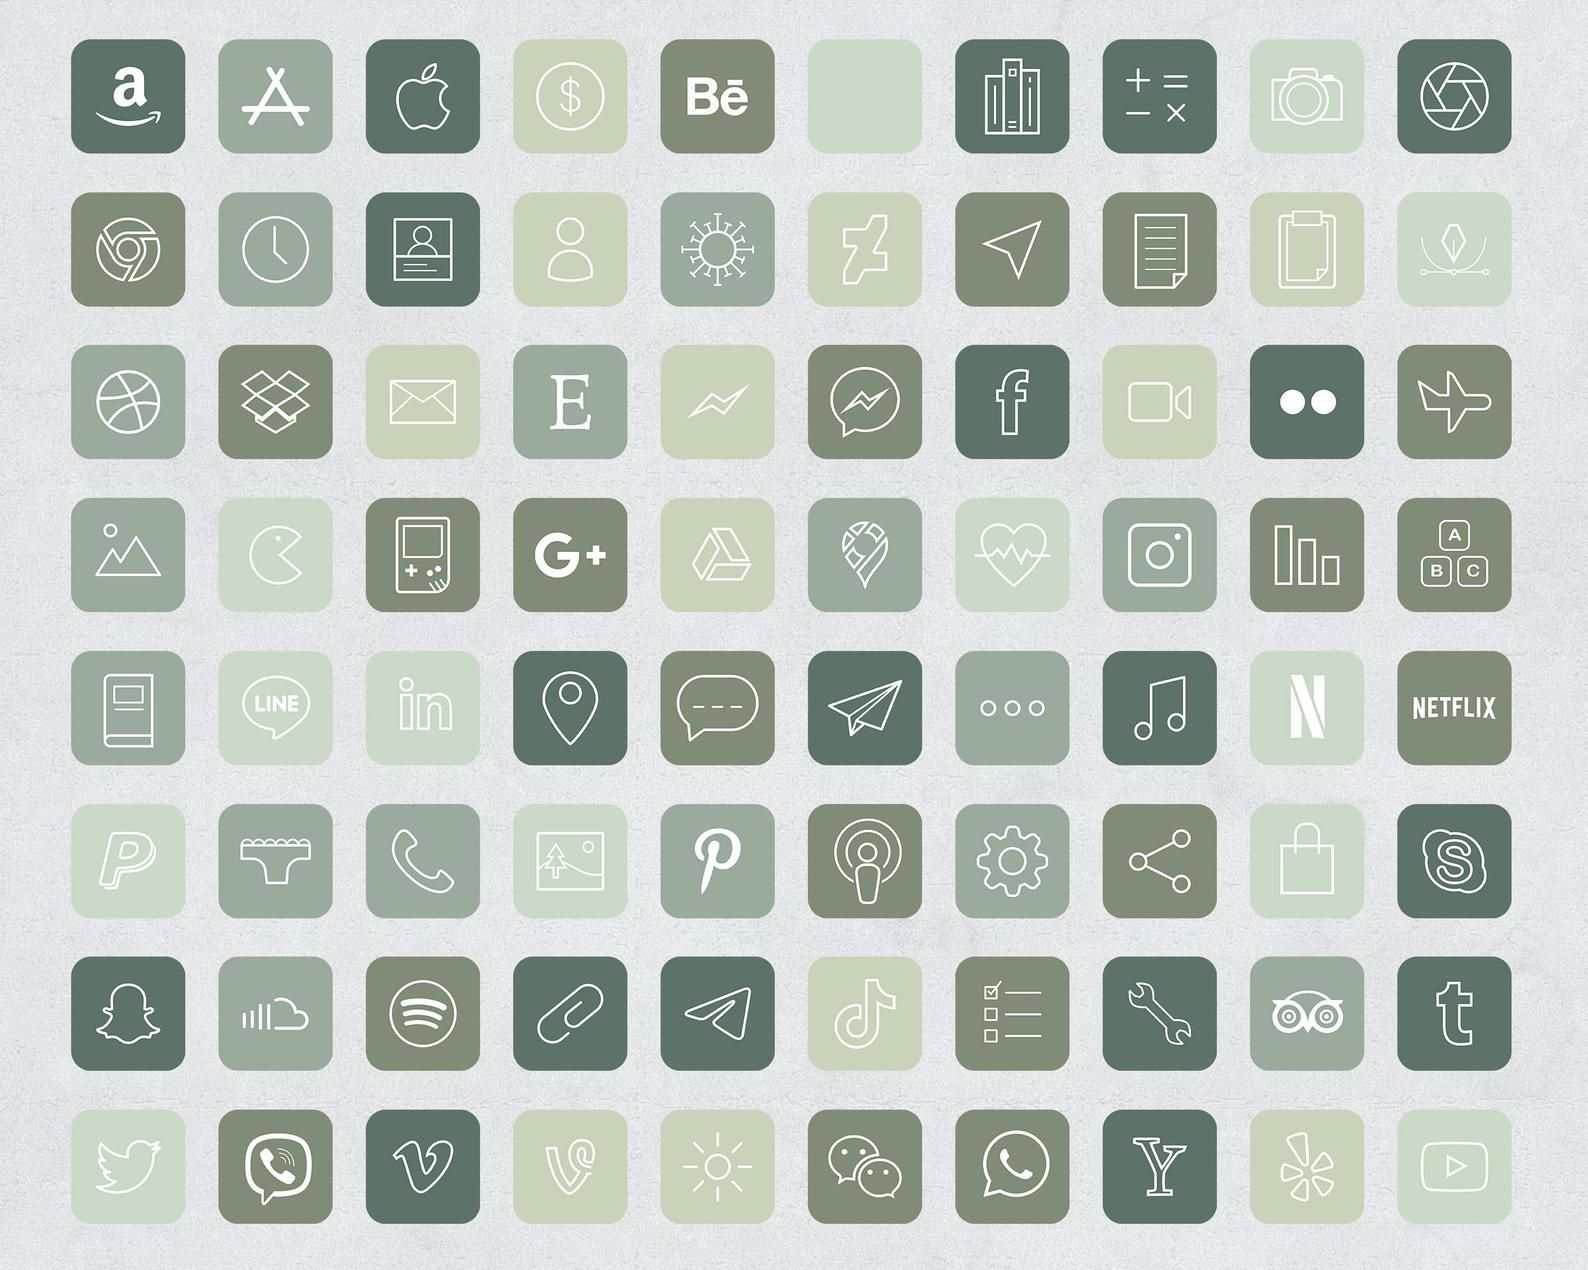 640 Forest Green Aesthetic iOS 14 App Icons / Soci